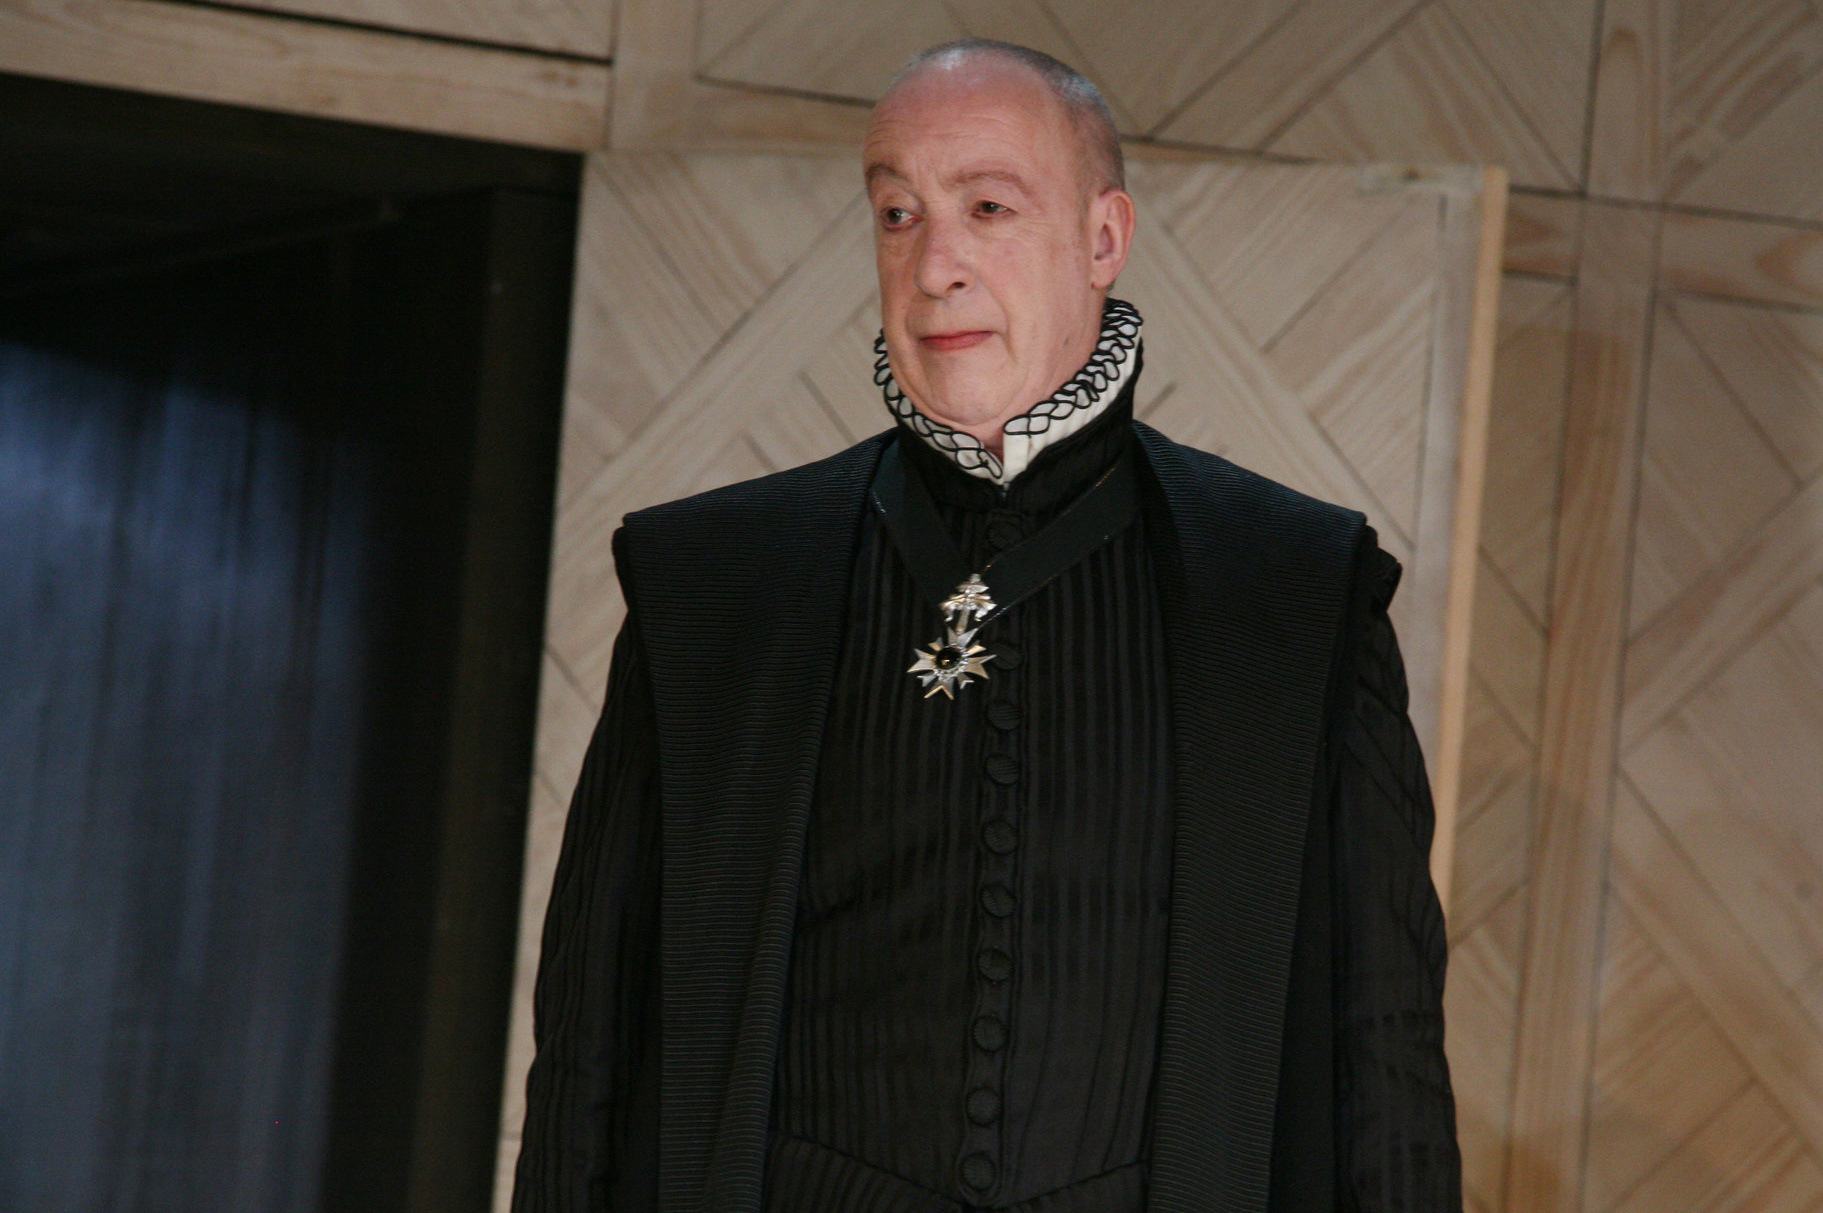 Duke Frederick in an austere black outfit with a small white ruff.